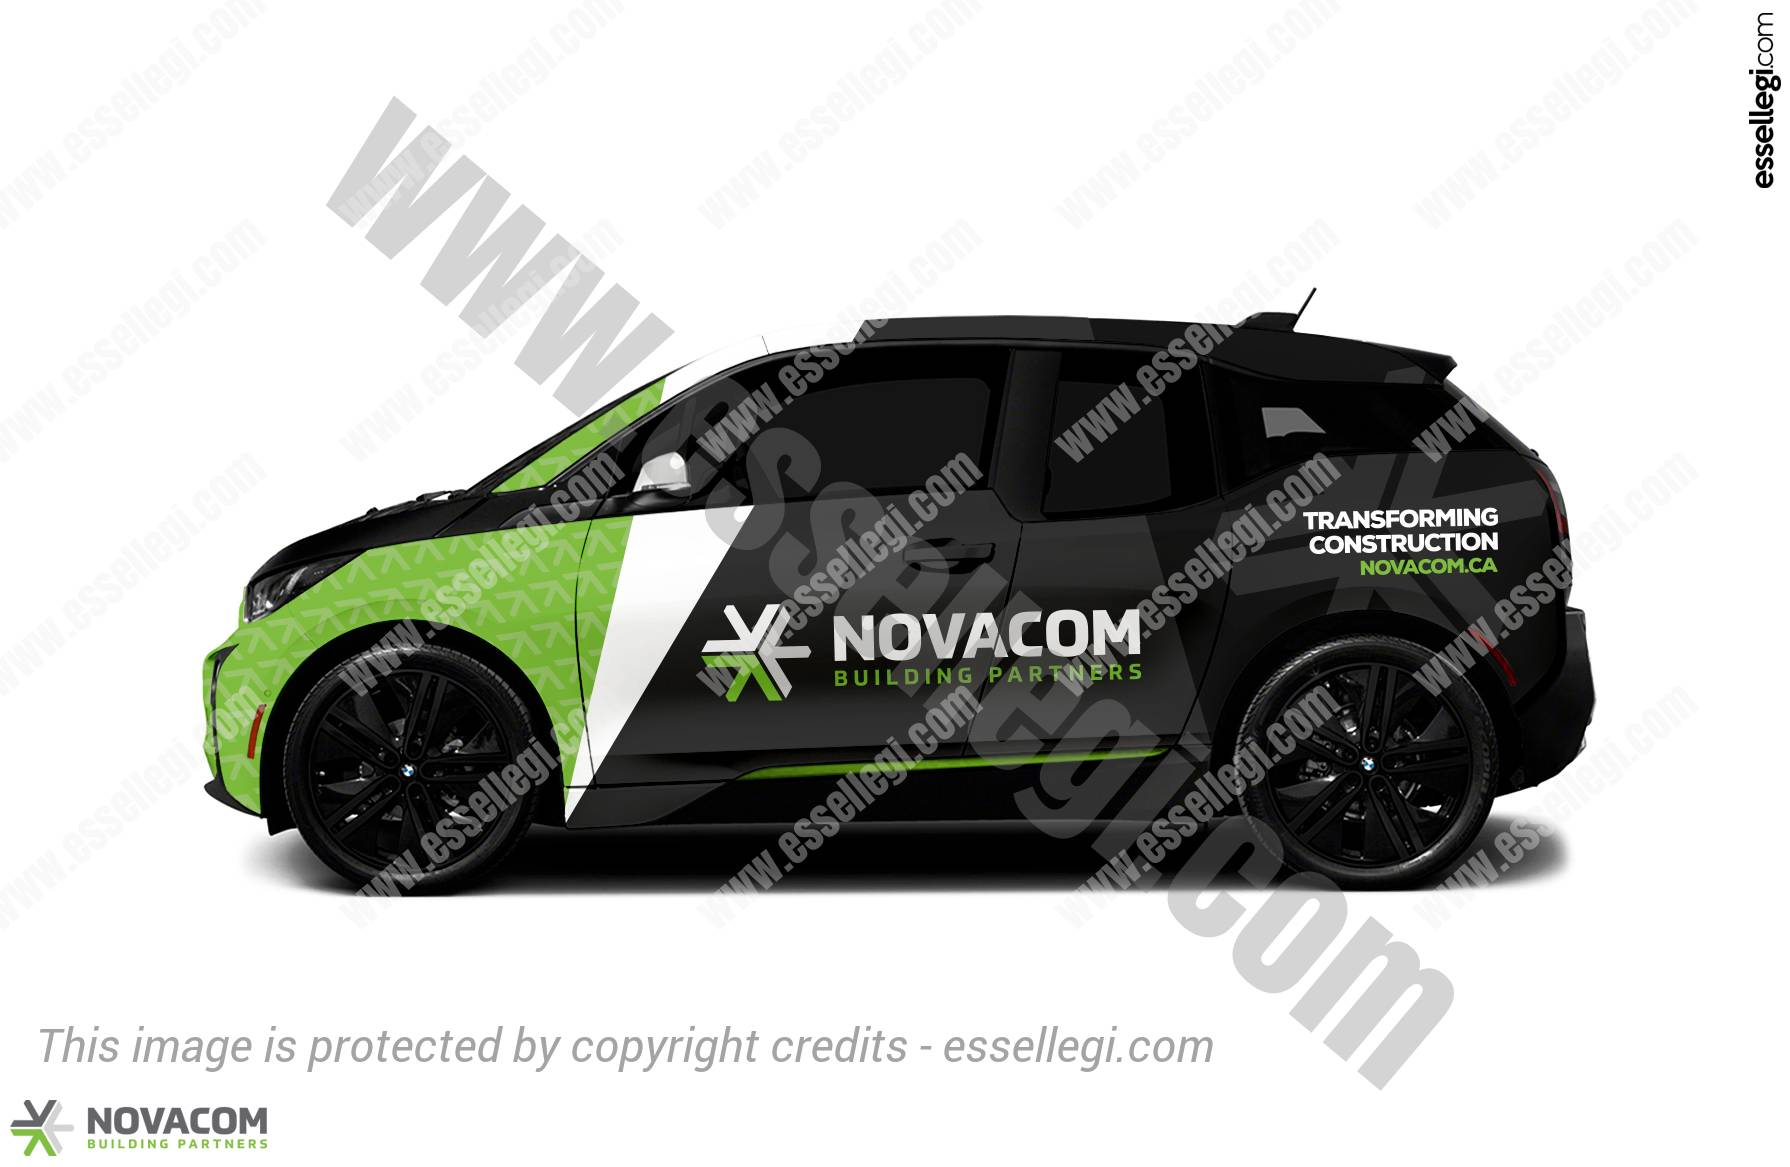 NOVACOM | CAR WRAP DESIGN 🇨🇦